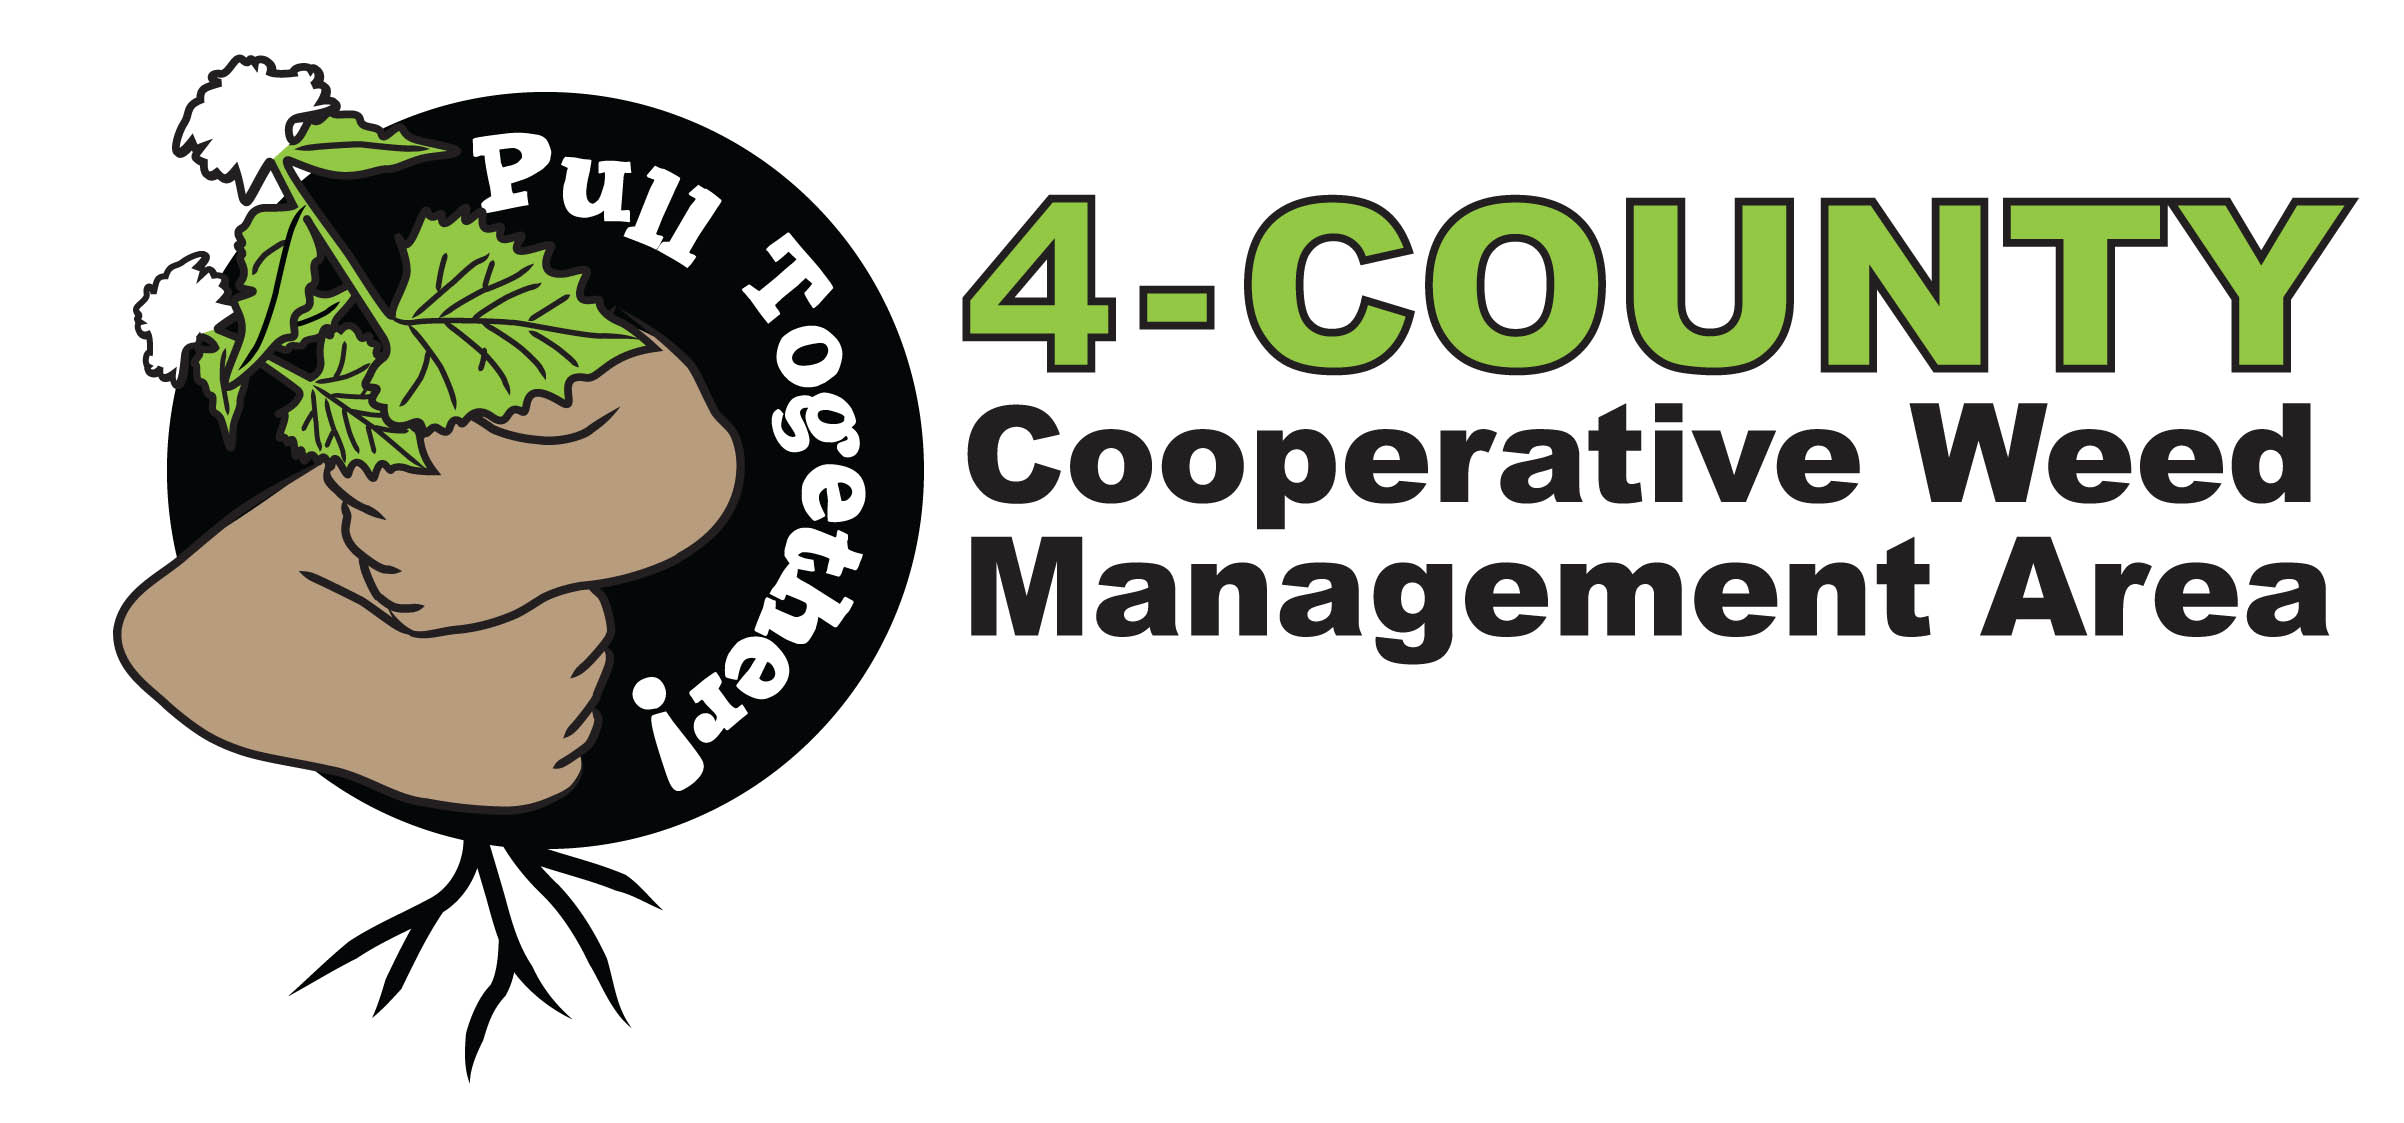 4-County Cooperative Weed Management Area